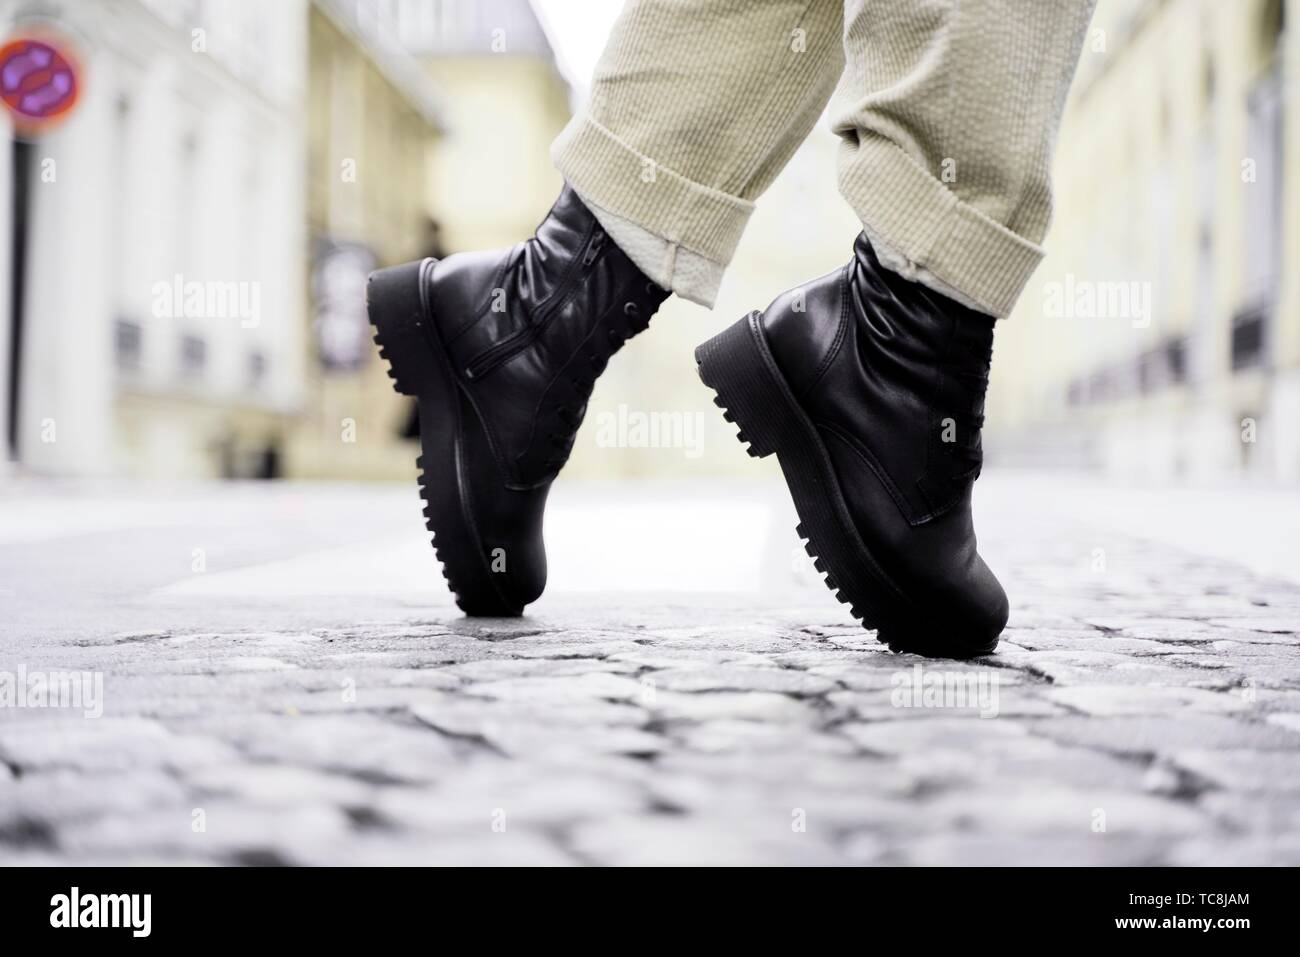 trendy black shoes tiptoe of fashionable woman at street during fashion week, in Paris, France. - Stock Image